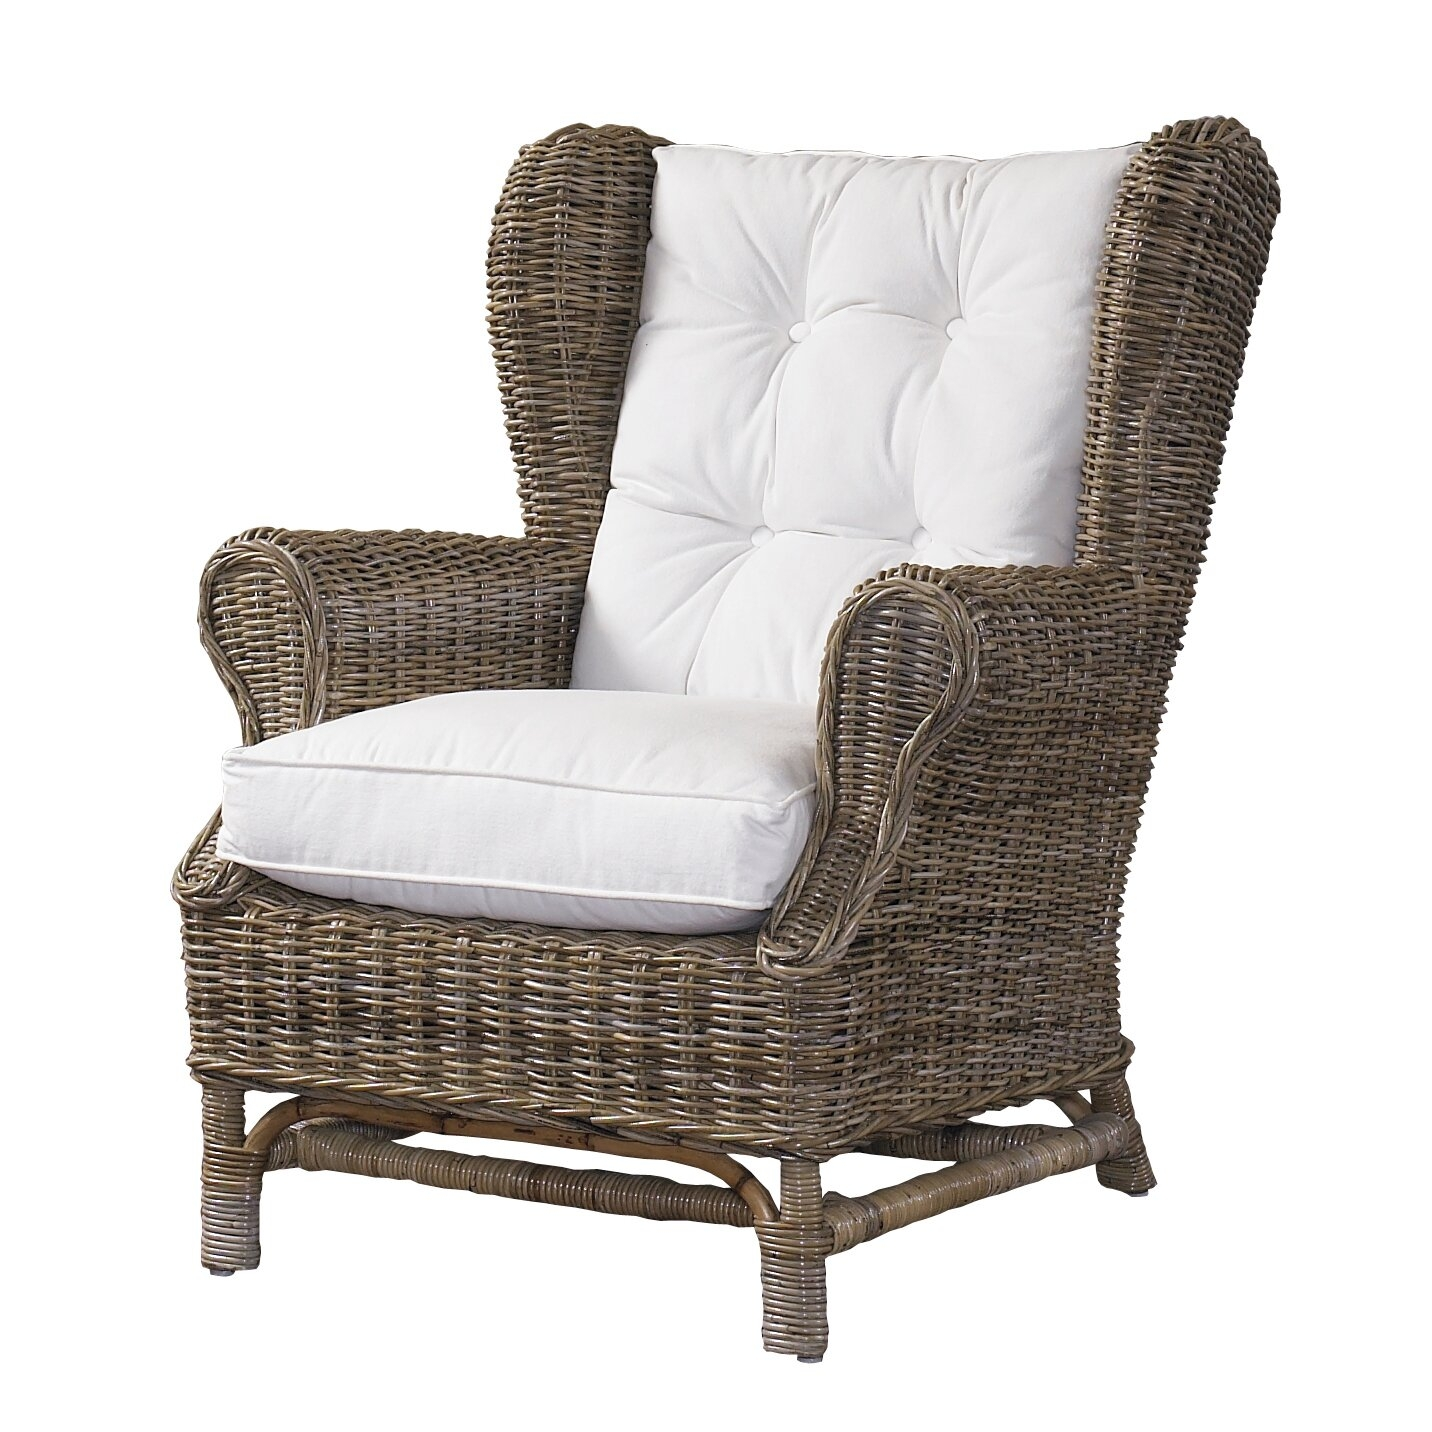 wicker outdoor arm chairs ideas on foter rh foter com high back swivel rocker patio furniture patio furniture covers for high back chairs